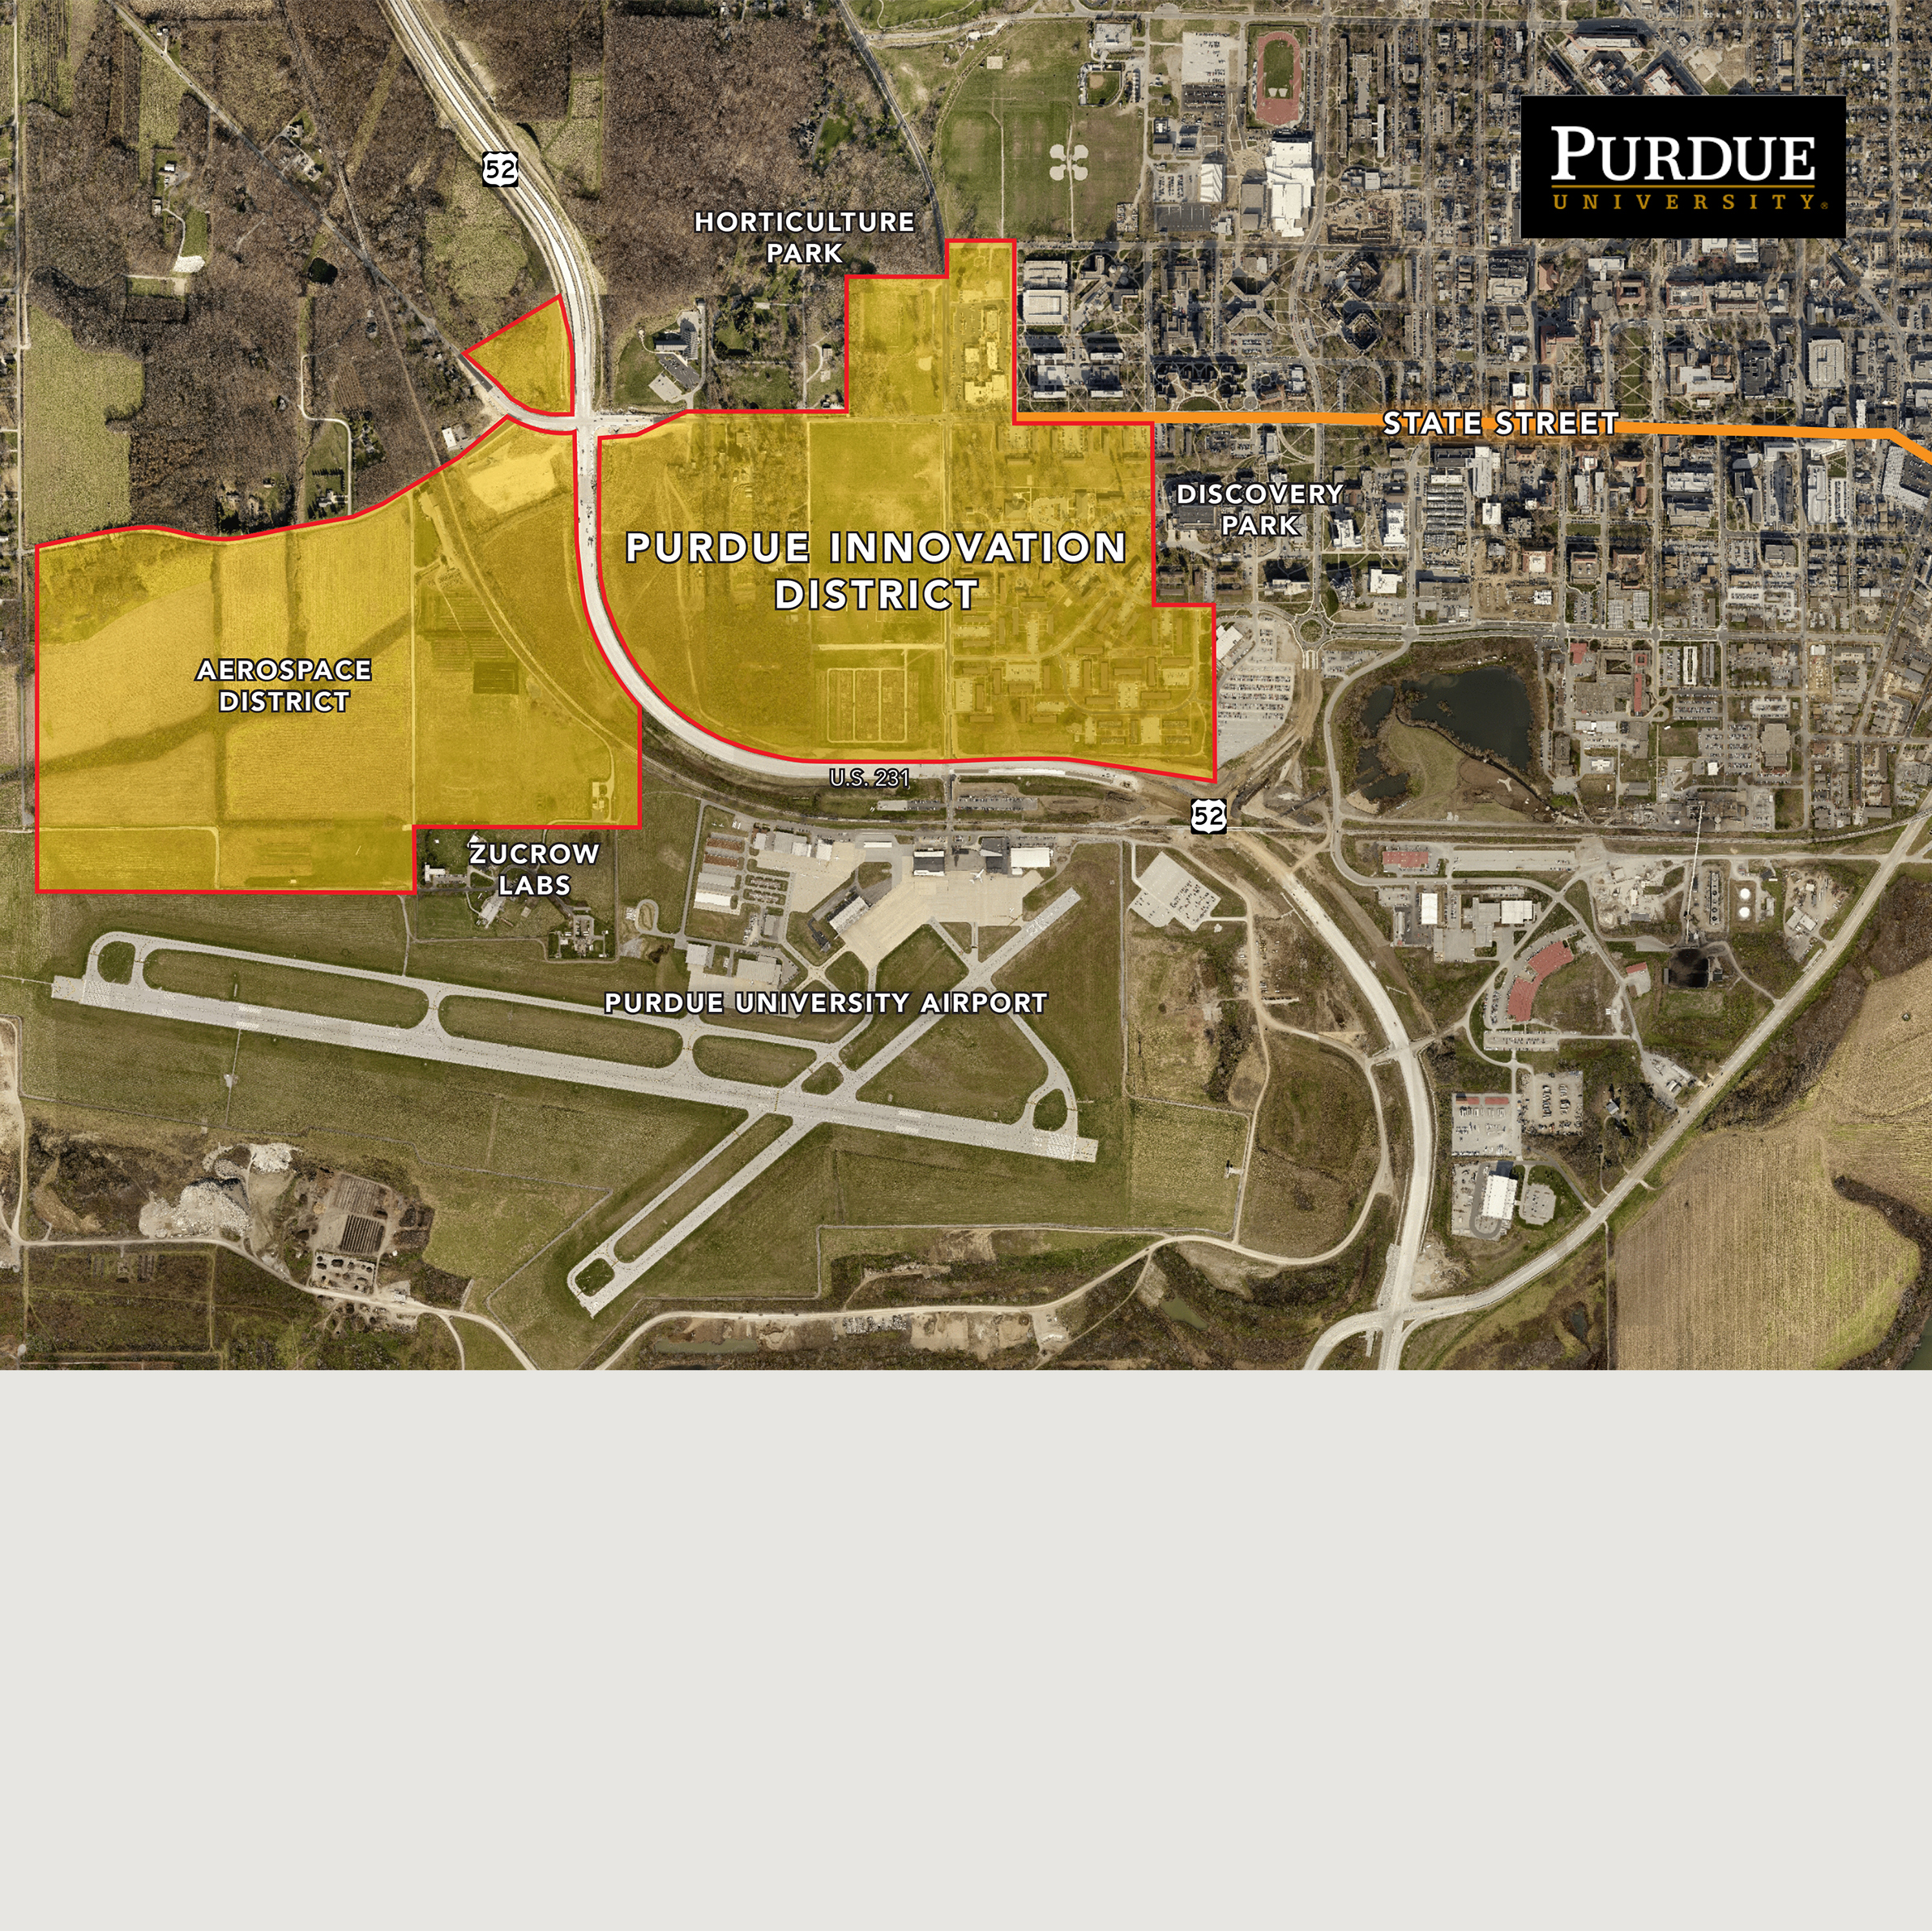 Purdue Innovation District, Master Planning